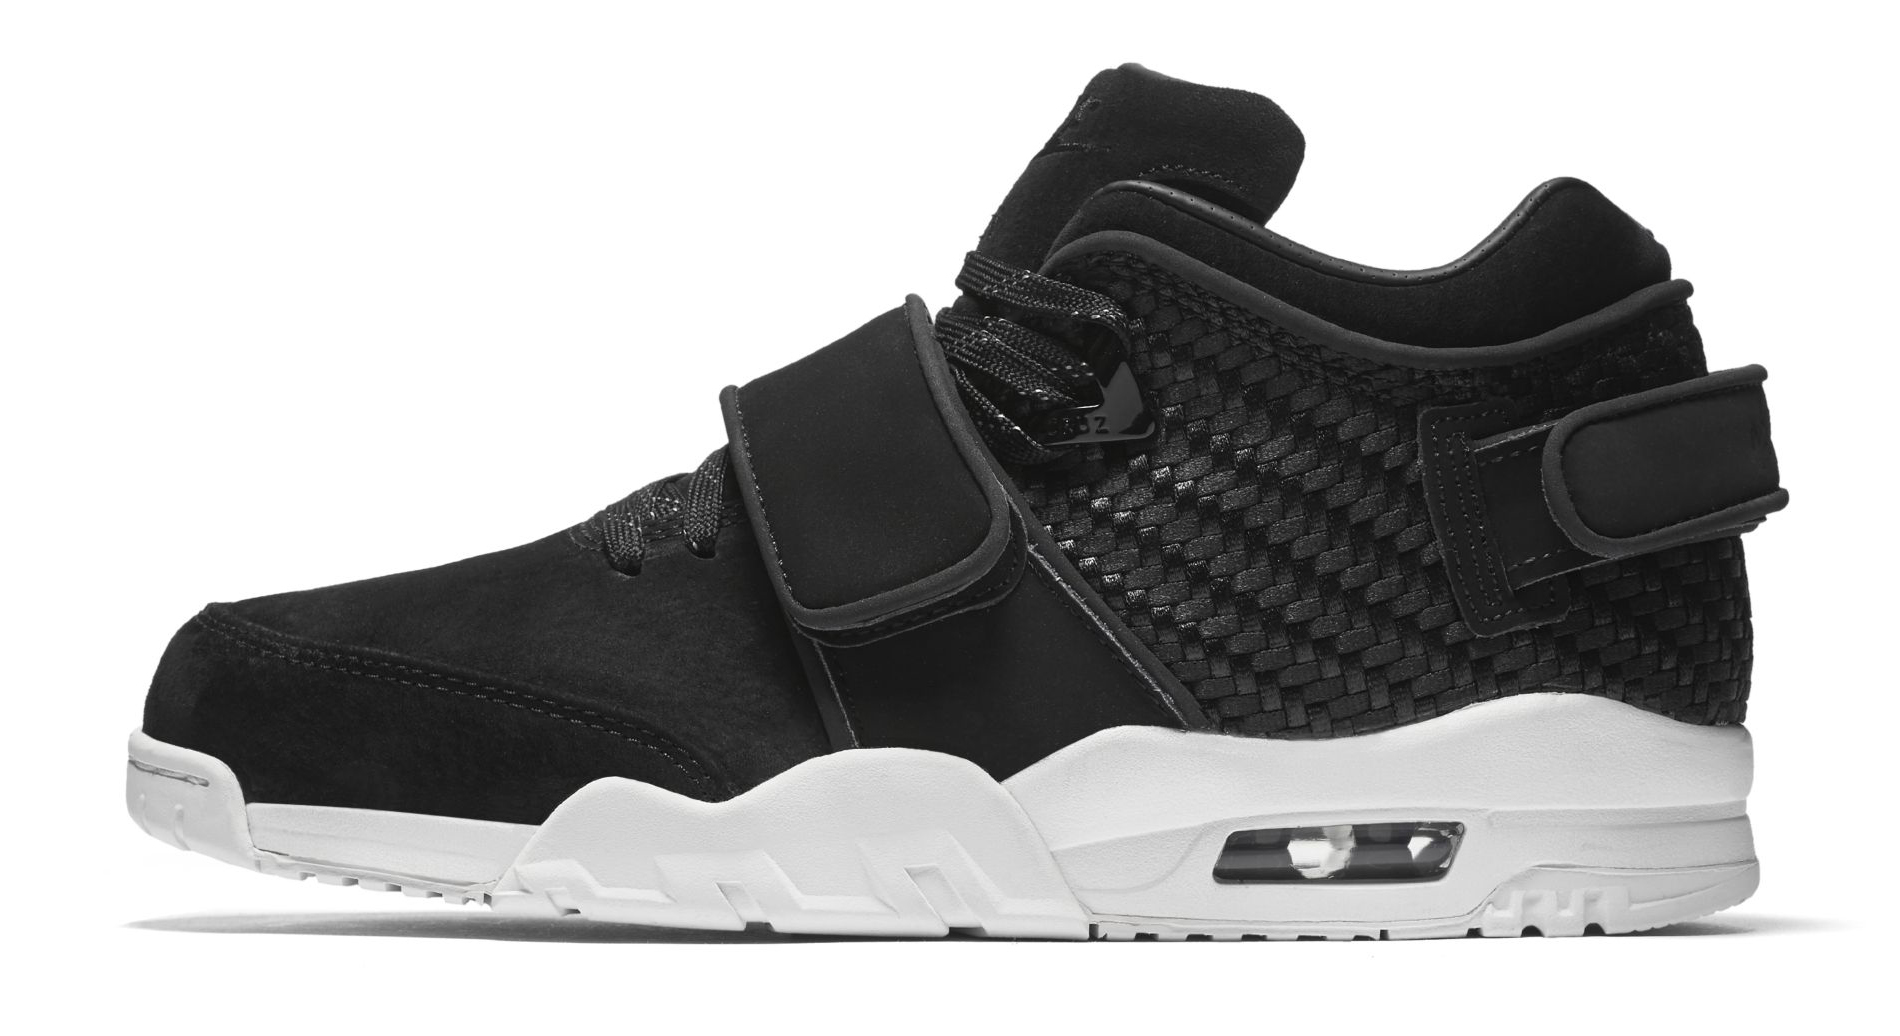 nike-air-trainer-cruz-black-white-profile_bpzg2k.jpg